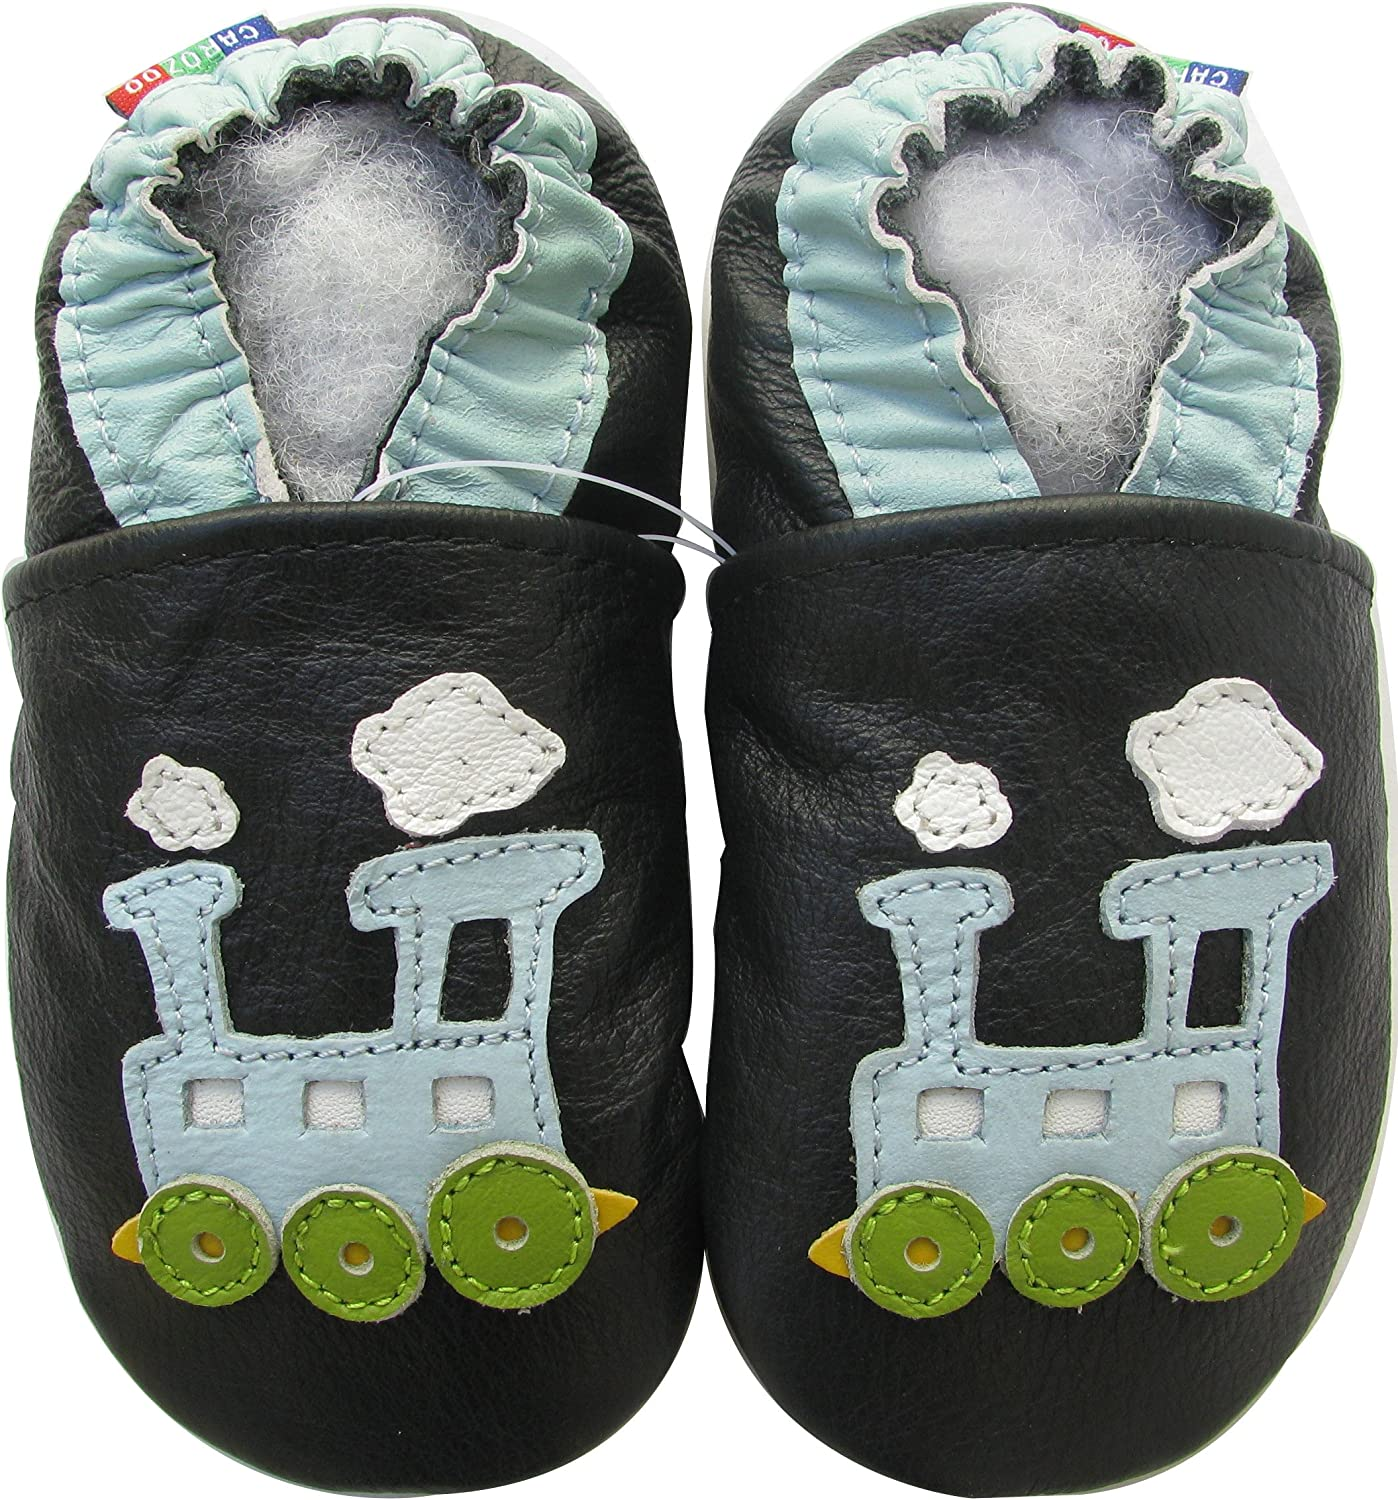 shoeszoo cow green 3-4y S soft sole leather toddler shoes